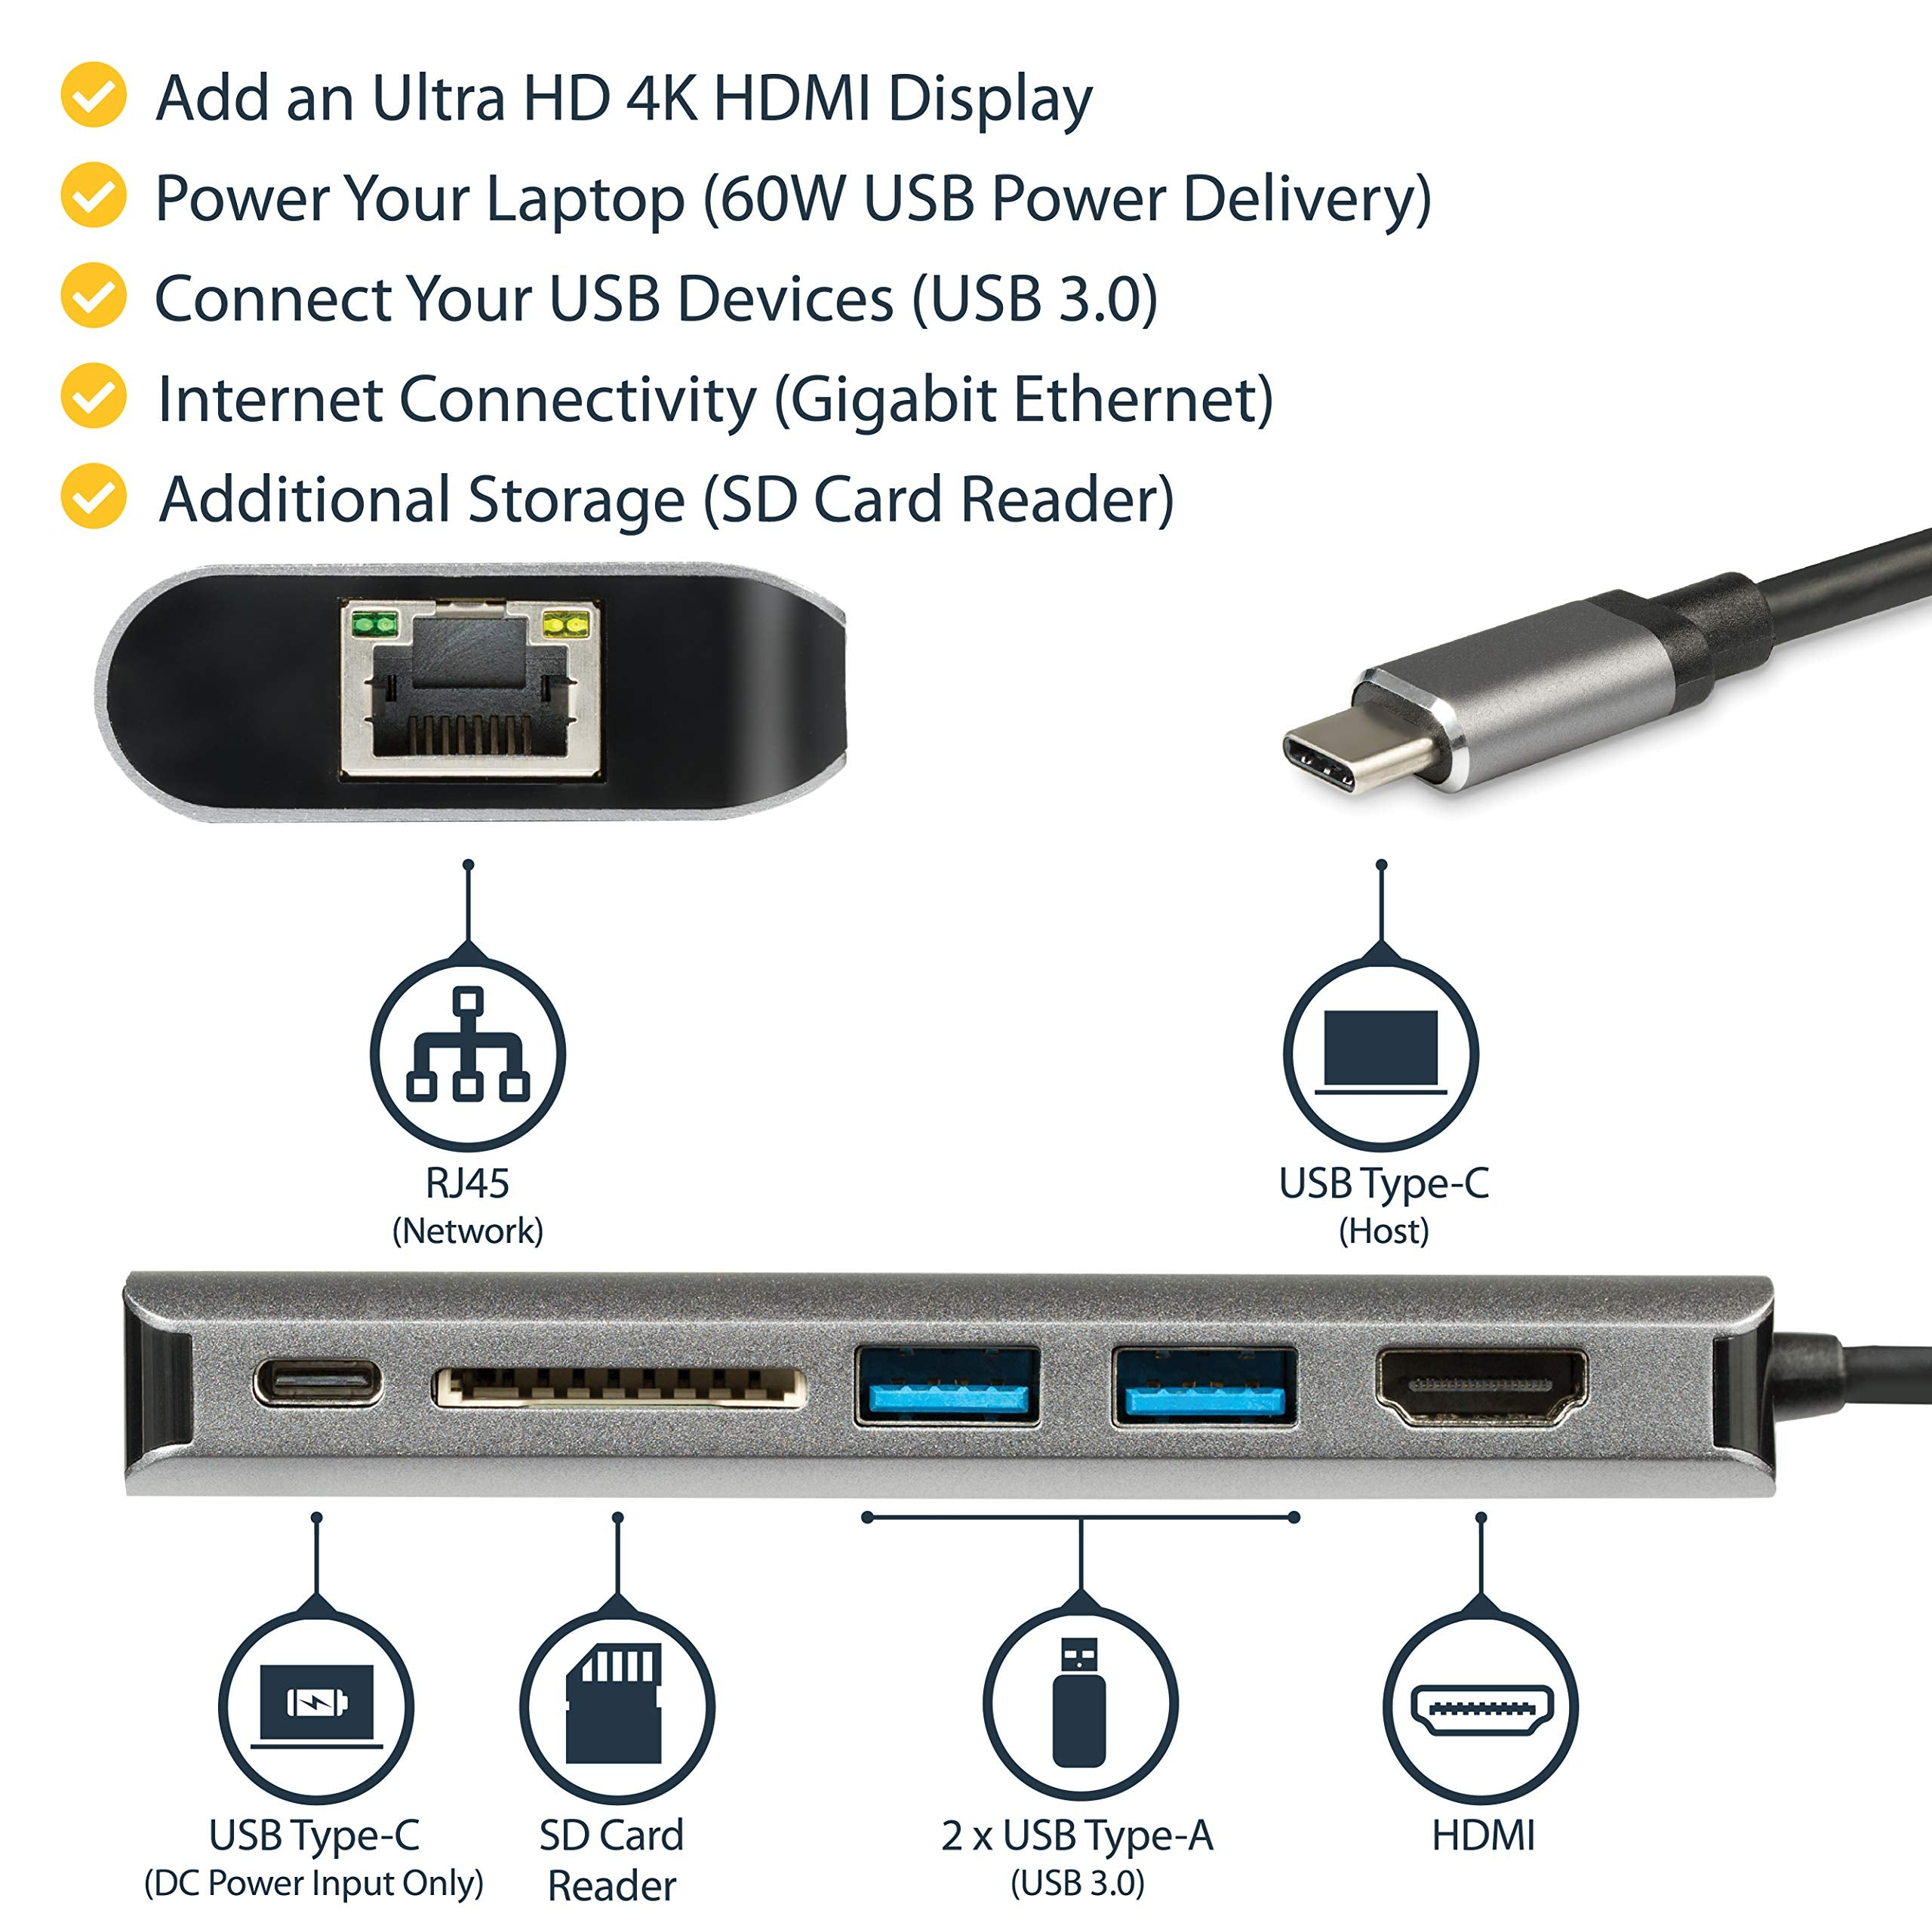 USB-C Multiport Adapter with HDMI - 4K - Mac / Windows - SD Card Reader - USB C to USB 3.0 Hub - 2x USB-A 1x USB-C - 60W PD 3.0